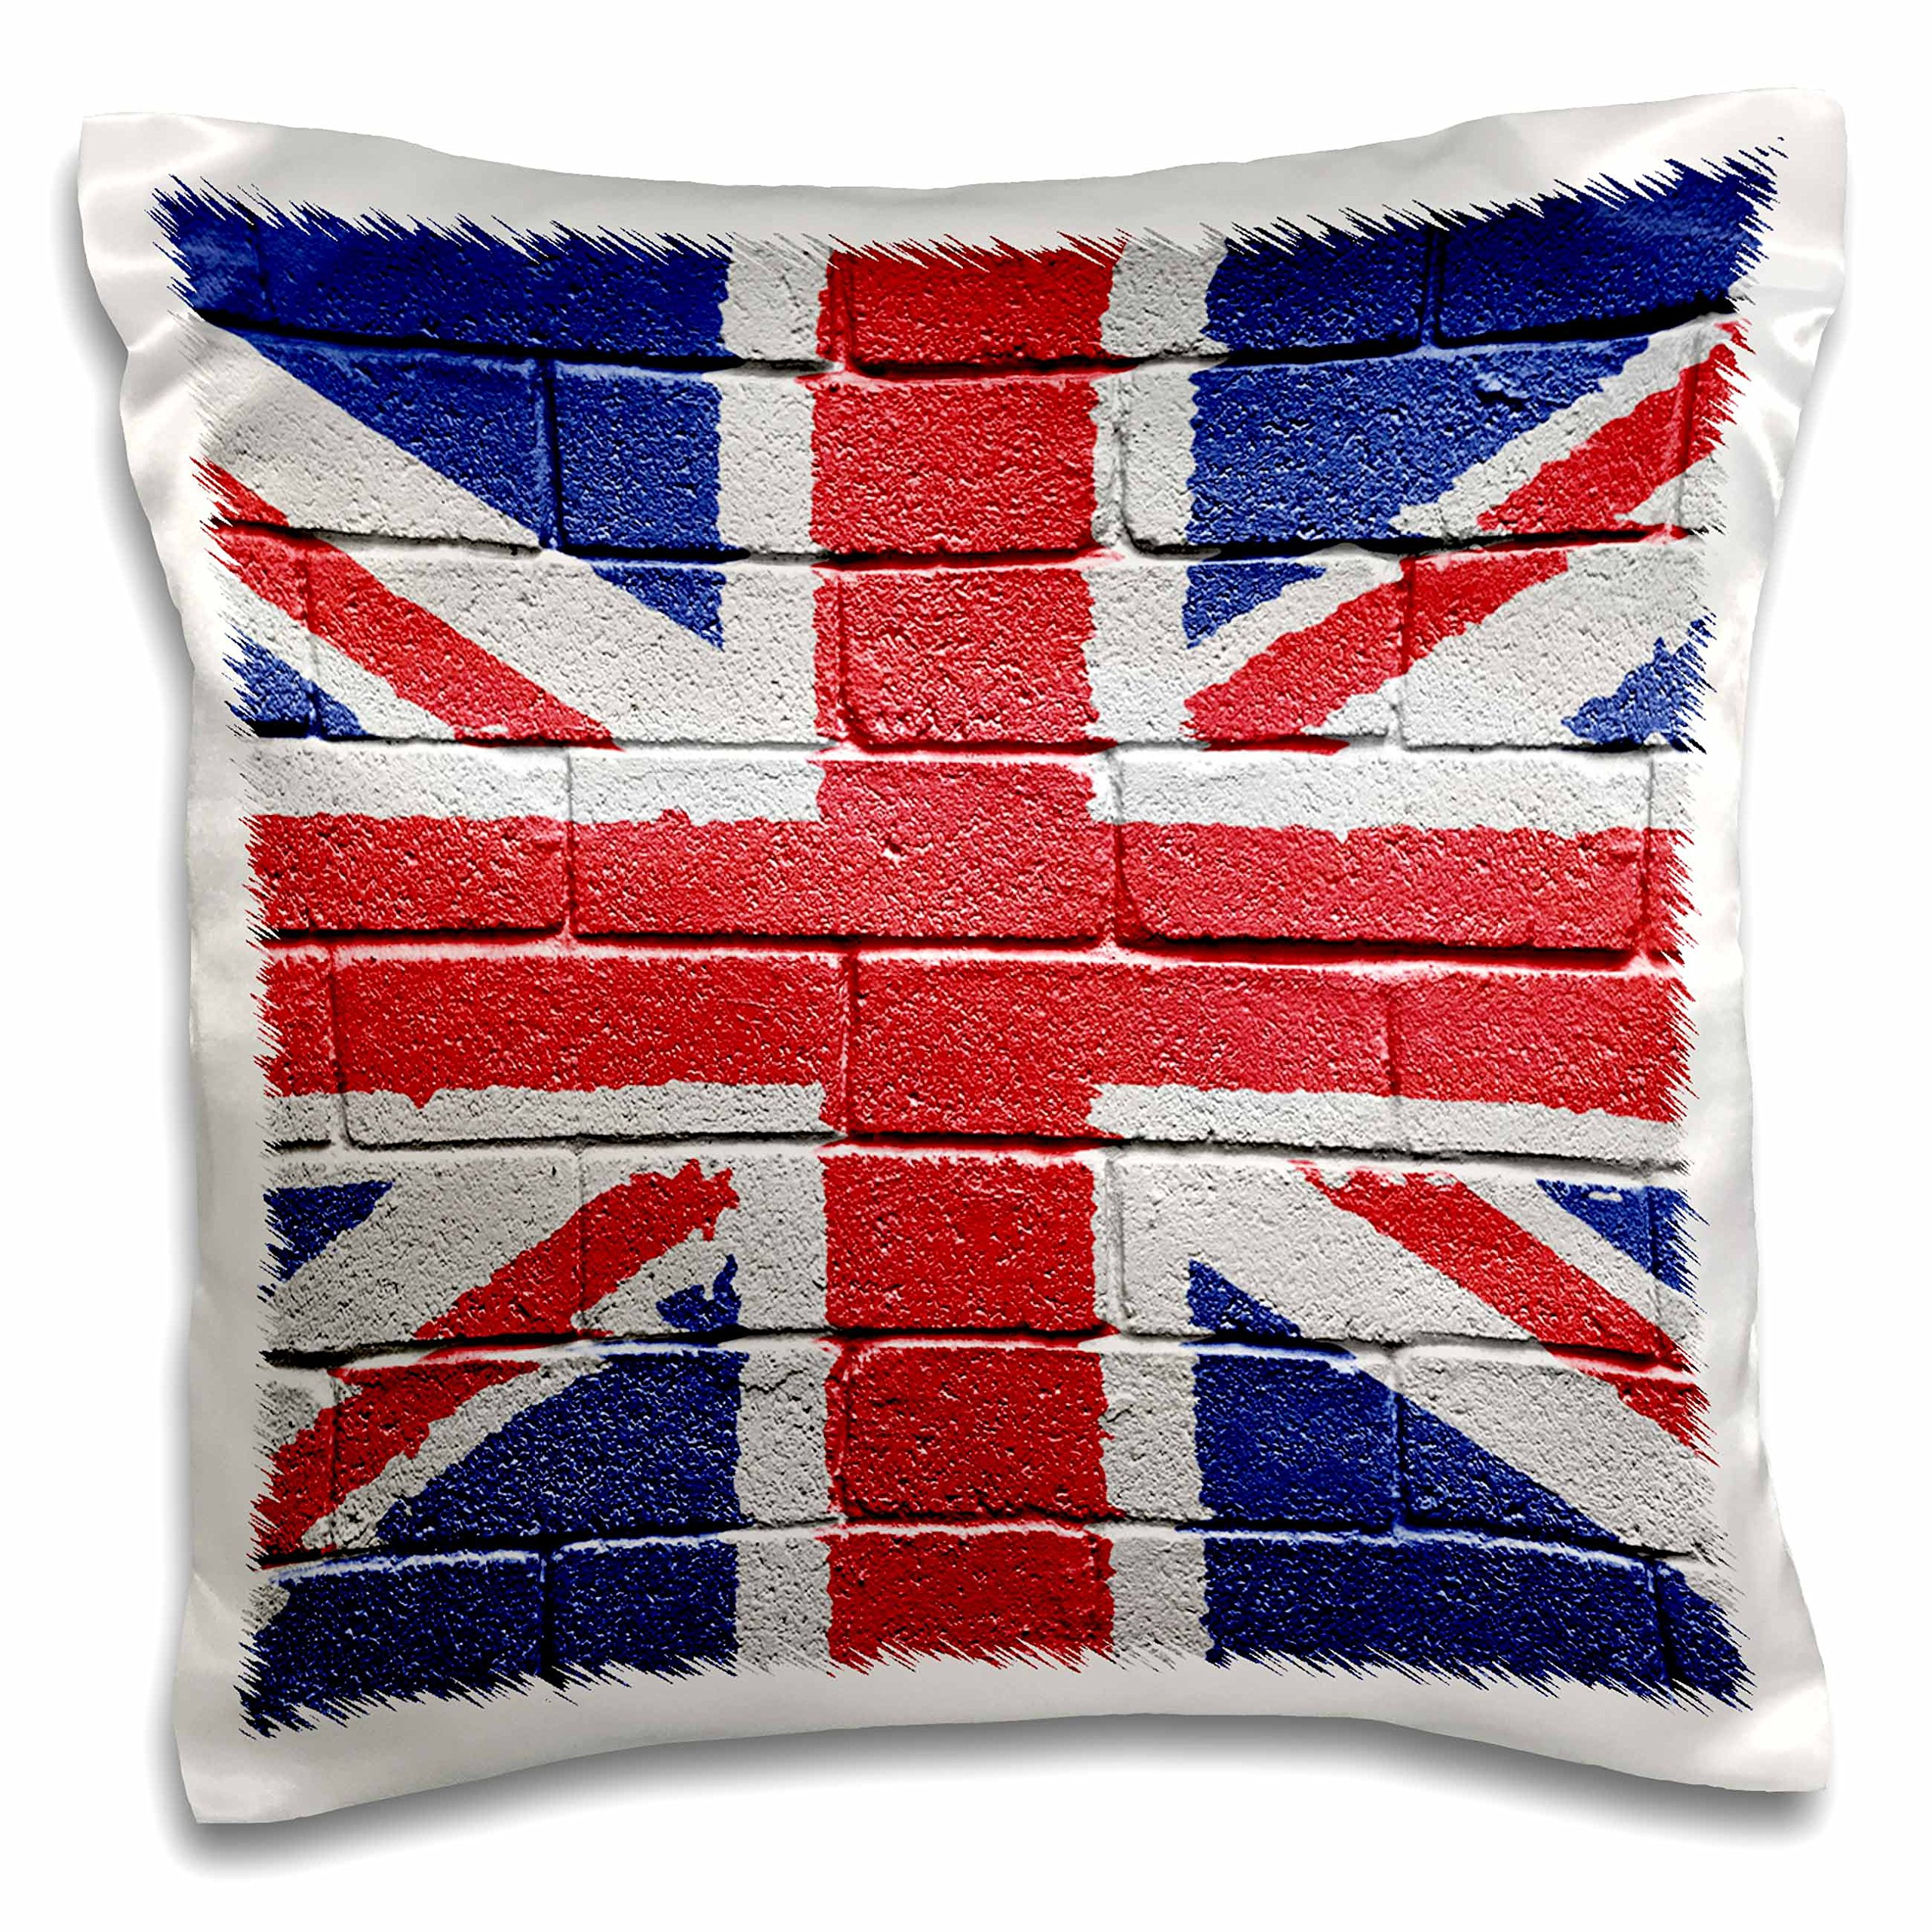 3dRose UK United Kingdom Great Britain British Flag on Brick Wall National Country-Pillow Case, 16 by 16'' (pc_155120_1)